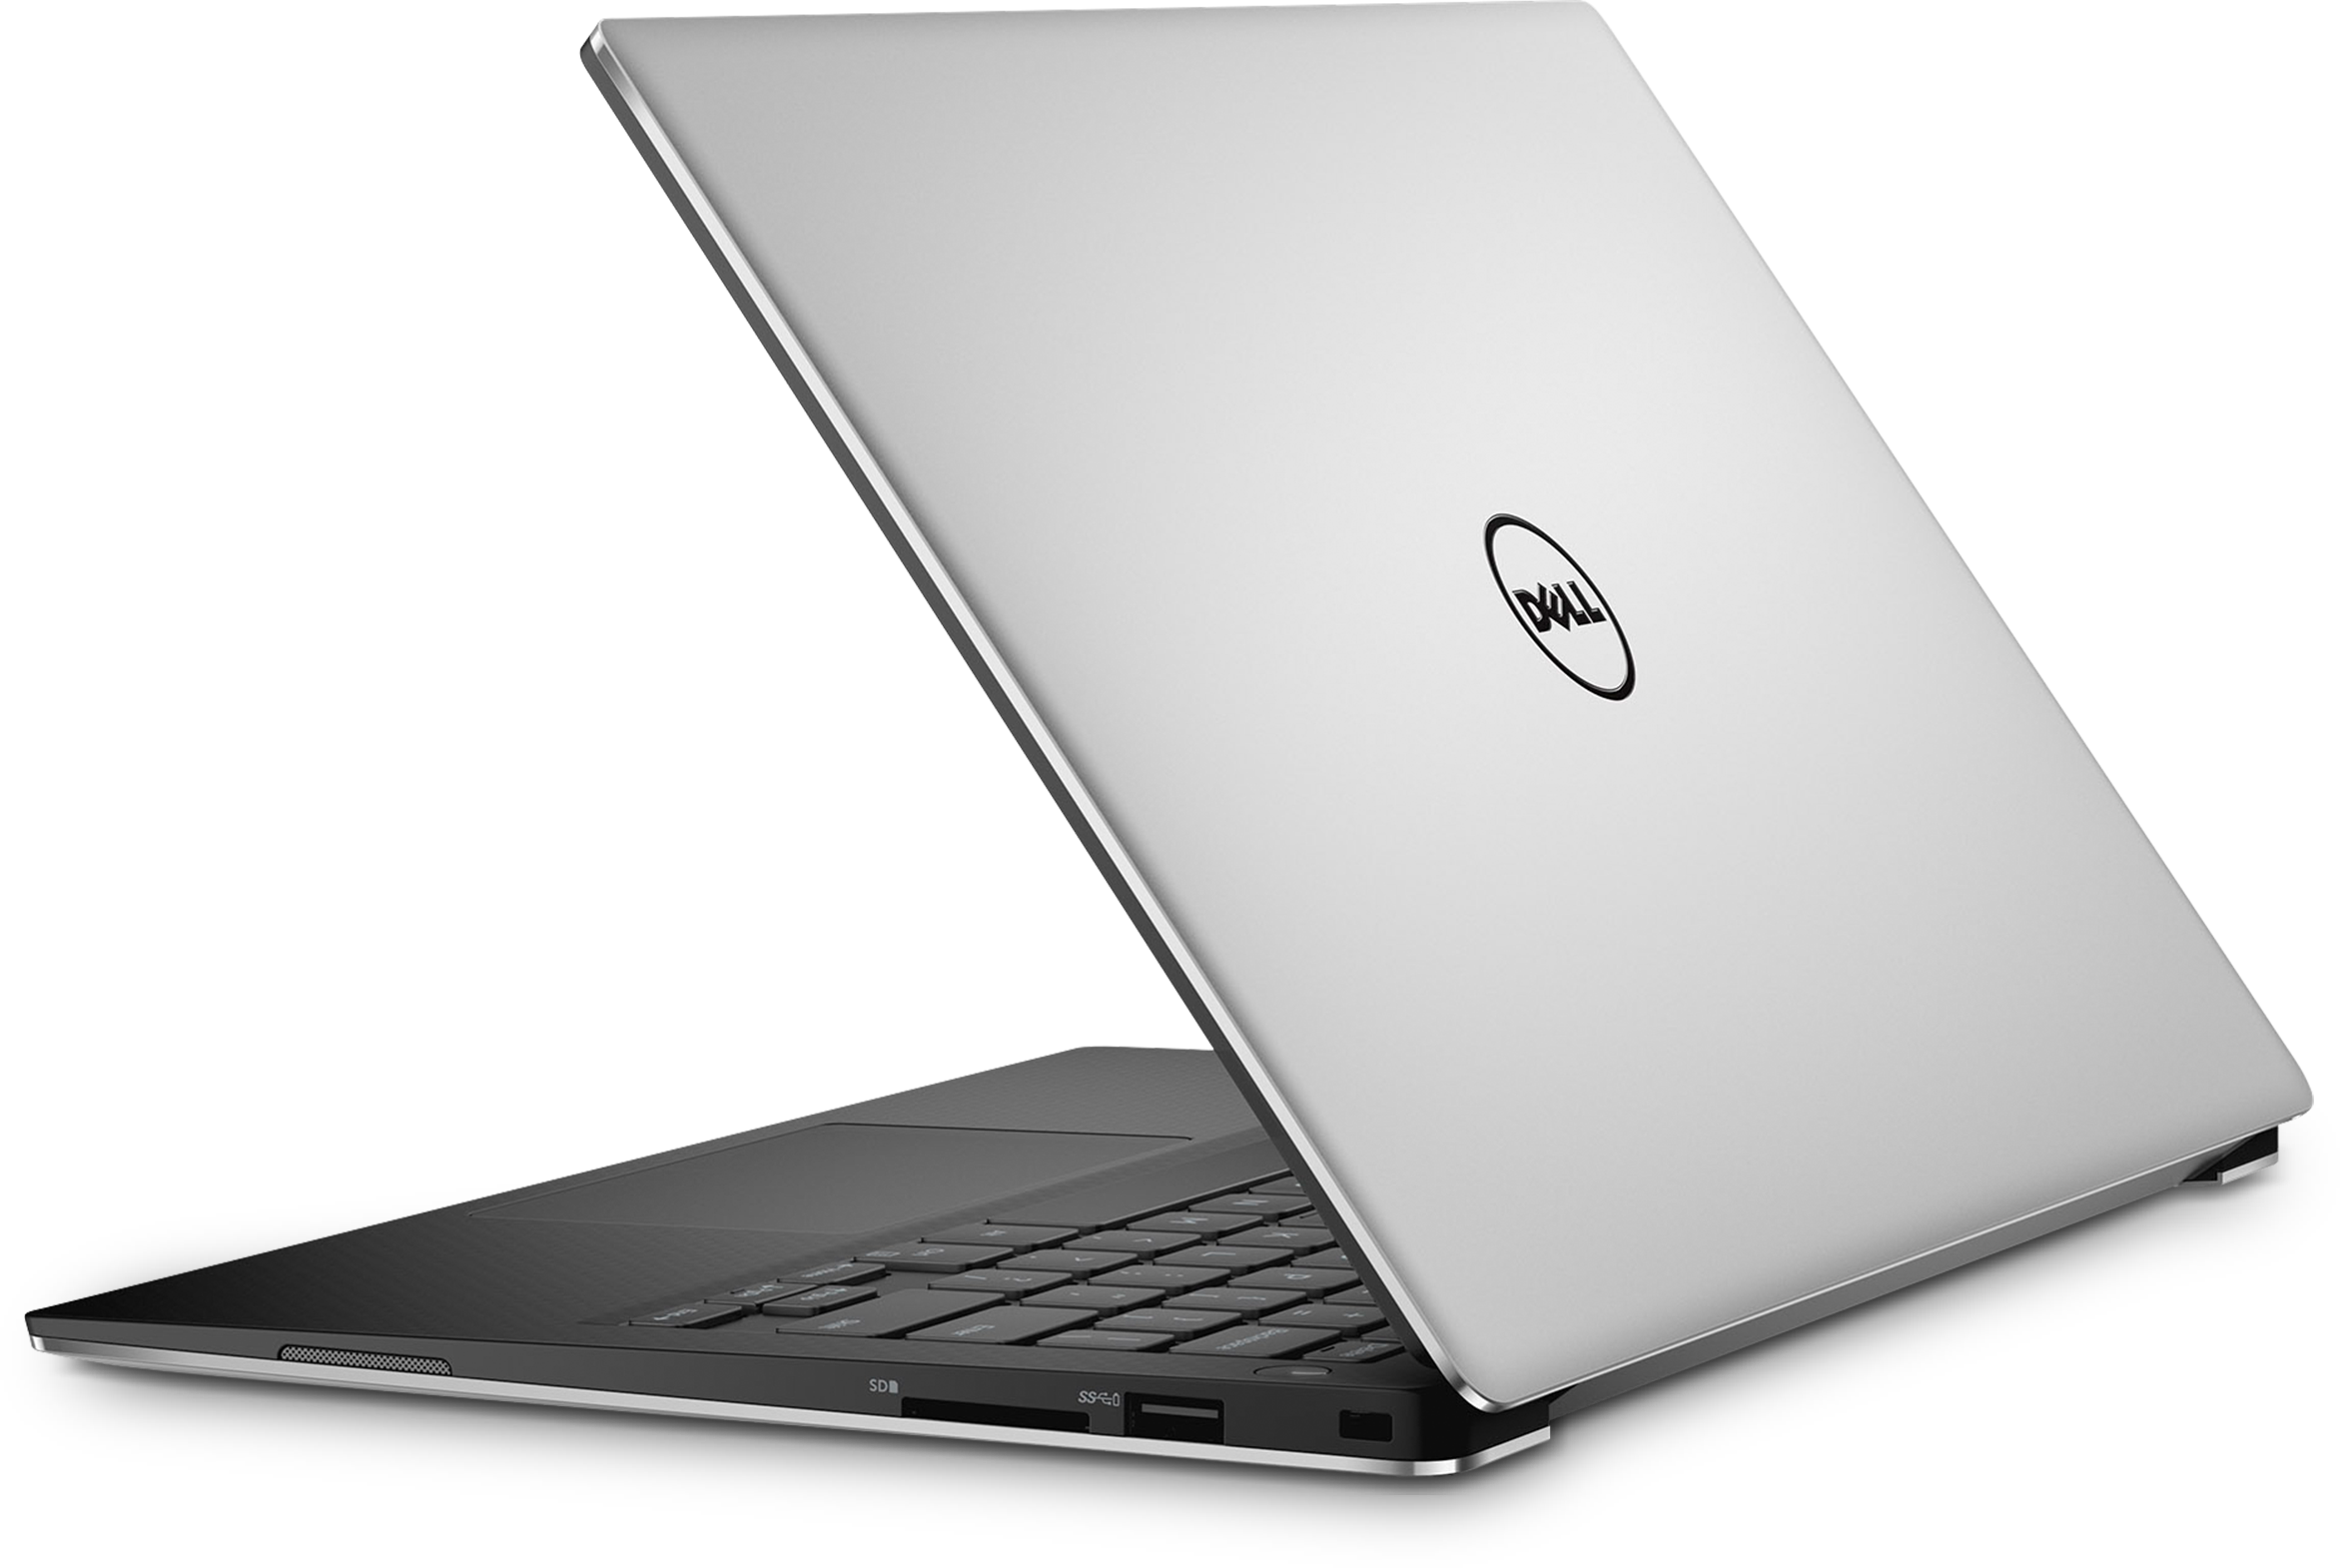 dell xps 13 signature edition laptop